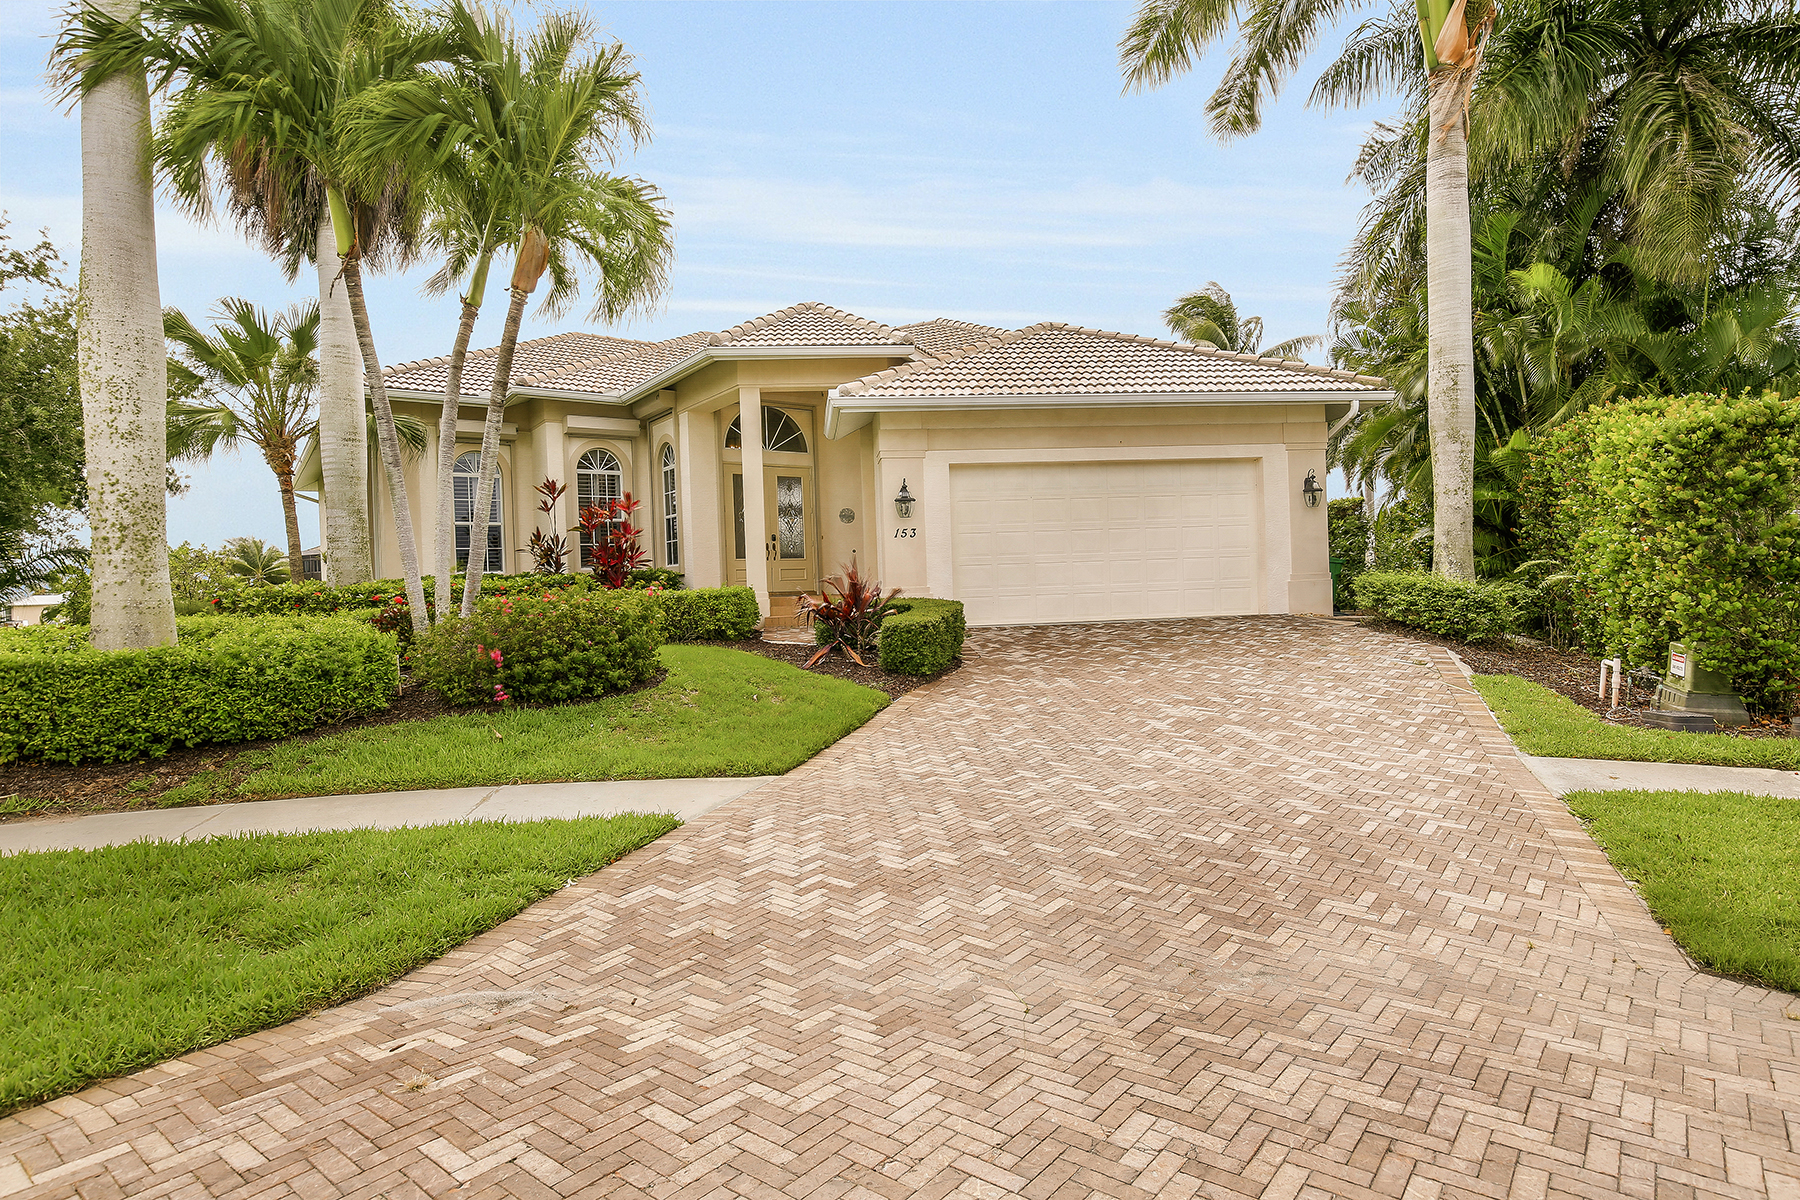 sales property at MARCO ISLAND - PEACH COURT